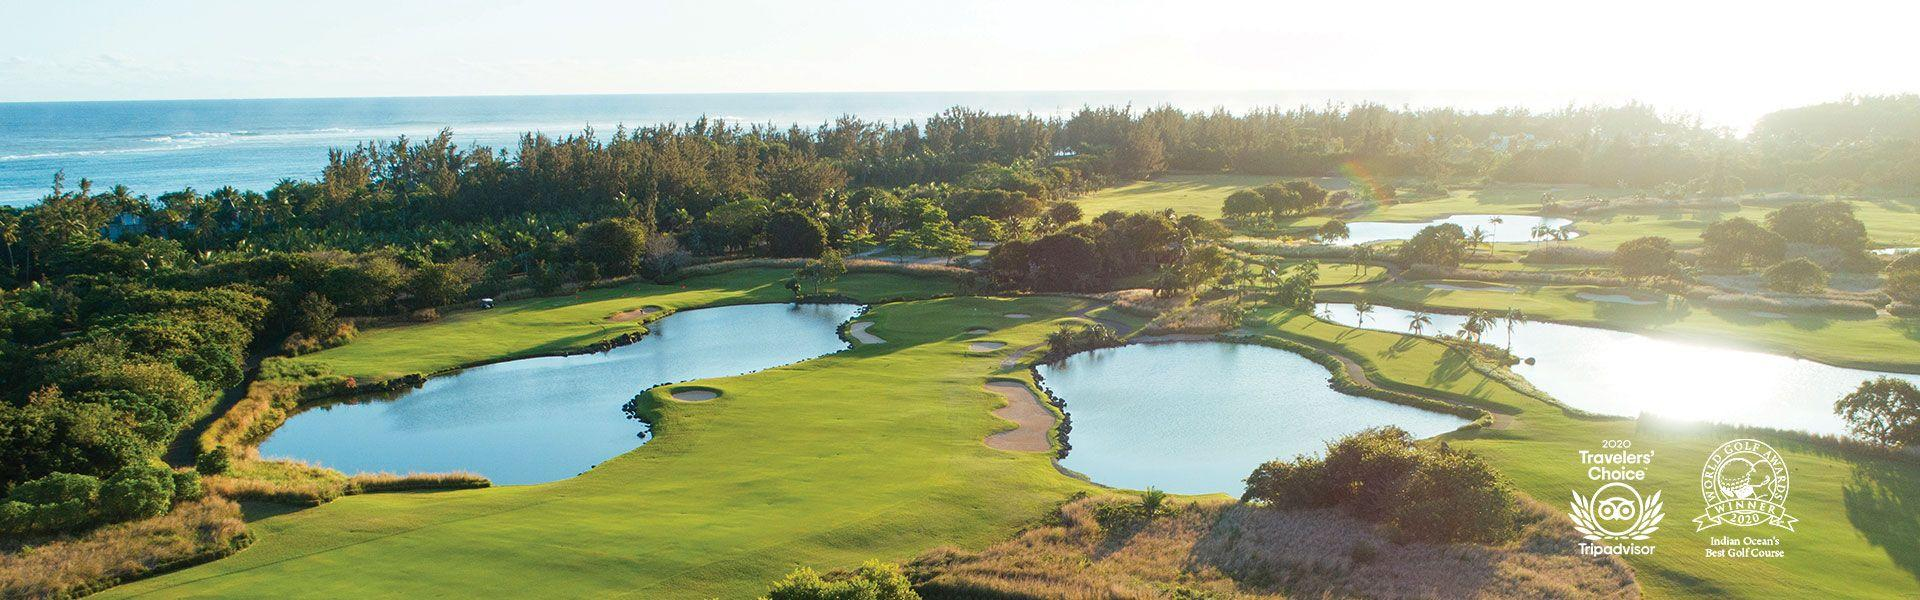 Heritage Golf Club - The best golf course in the Indian Ocean